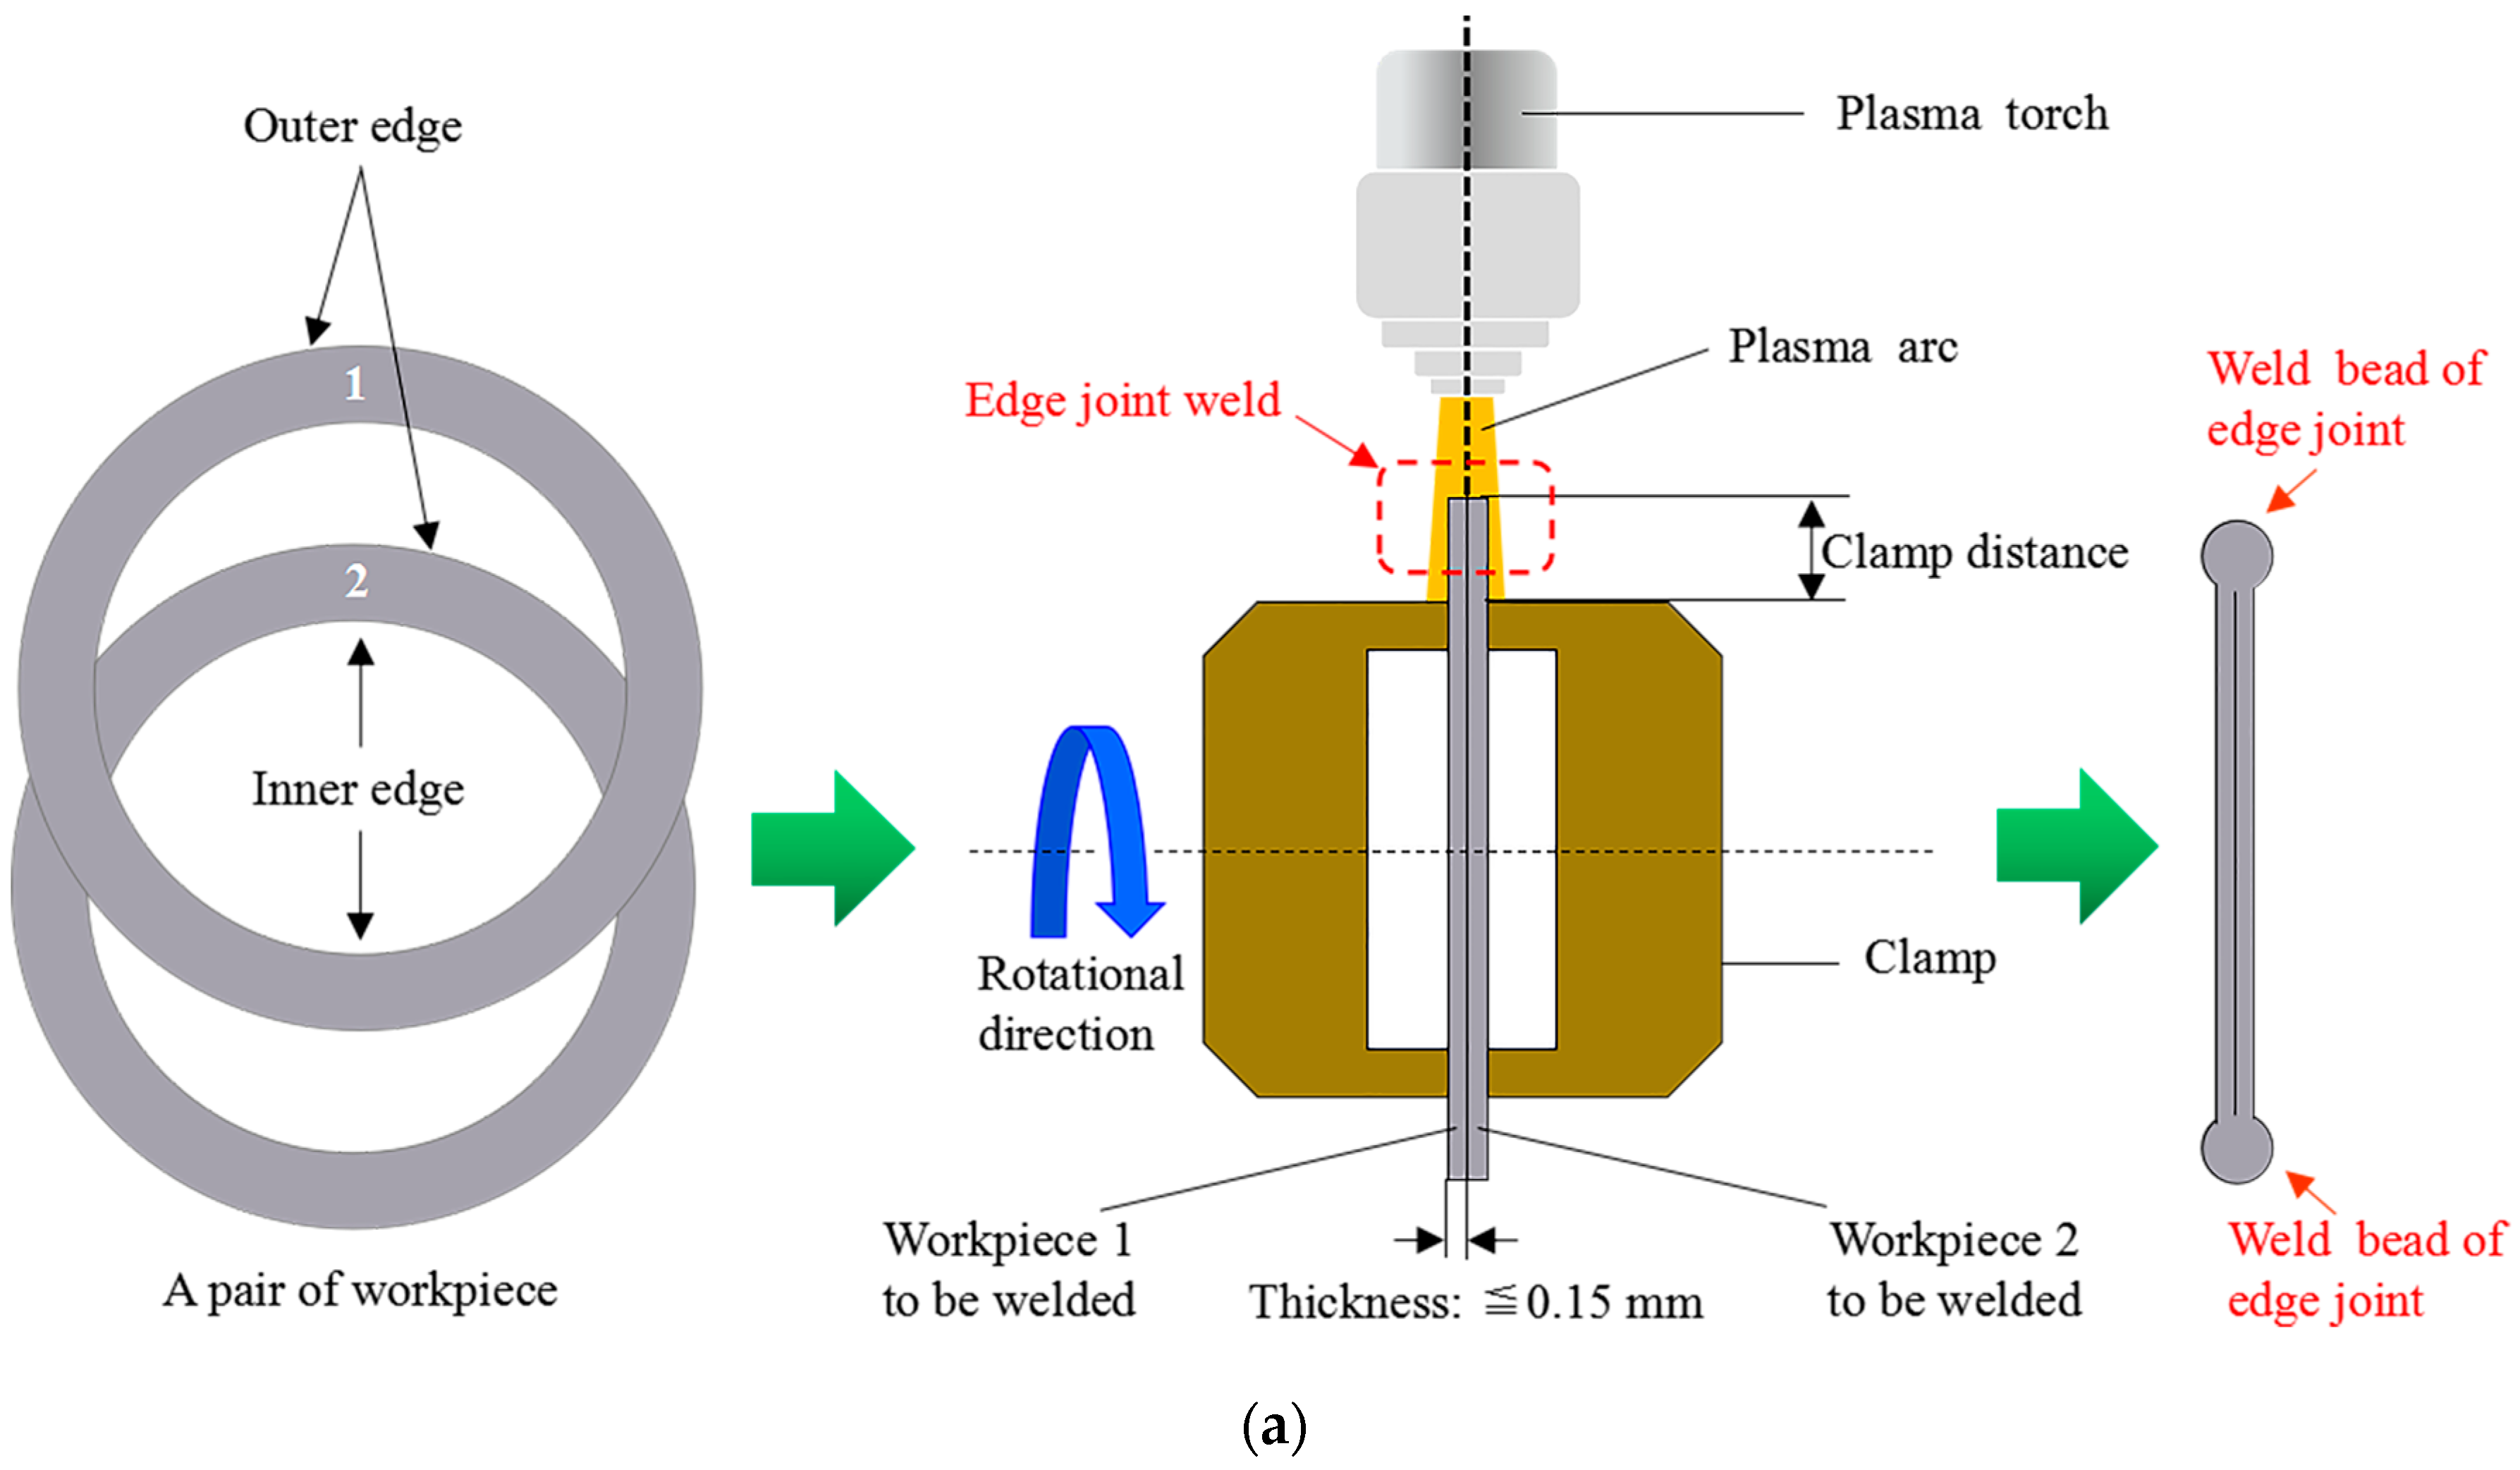 Sensors Free Full Text In Process Monitoring Of Lack Of Fusion In Ultra Thin Sheets Edge Welding Using Machine Vision Html